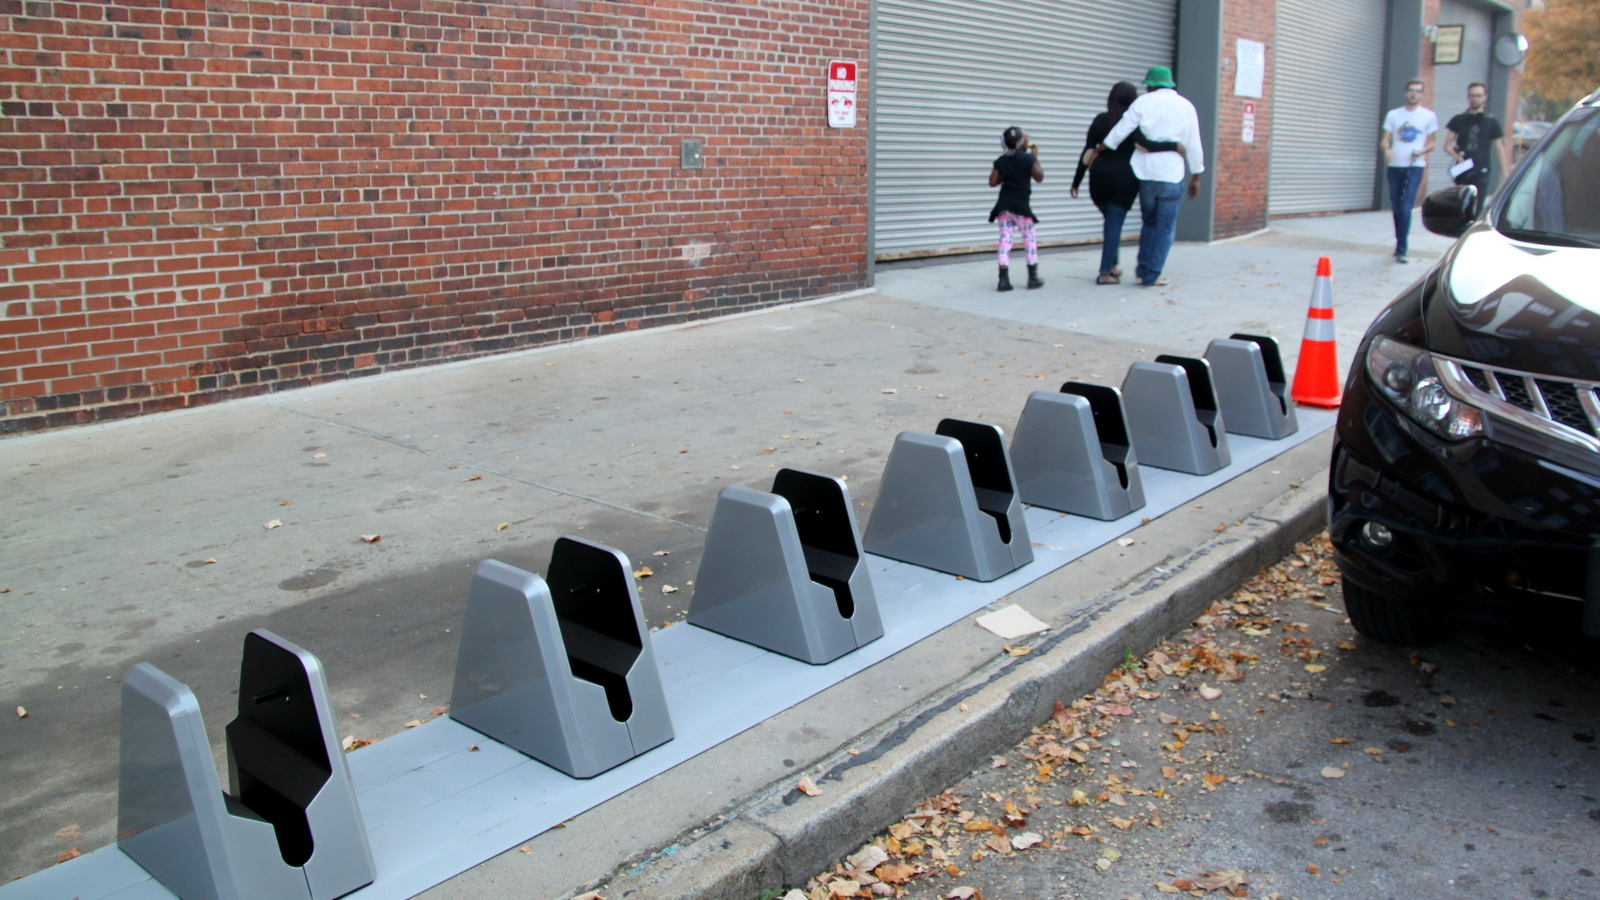 The Mt. Vernon Bikeshare kiosks. (Fern Shen)